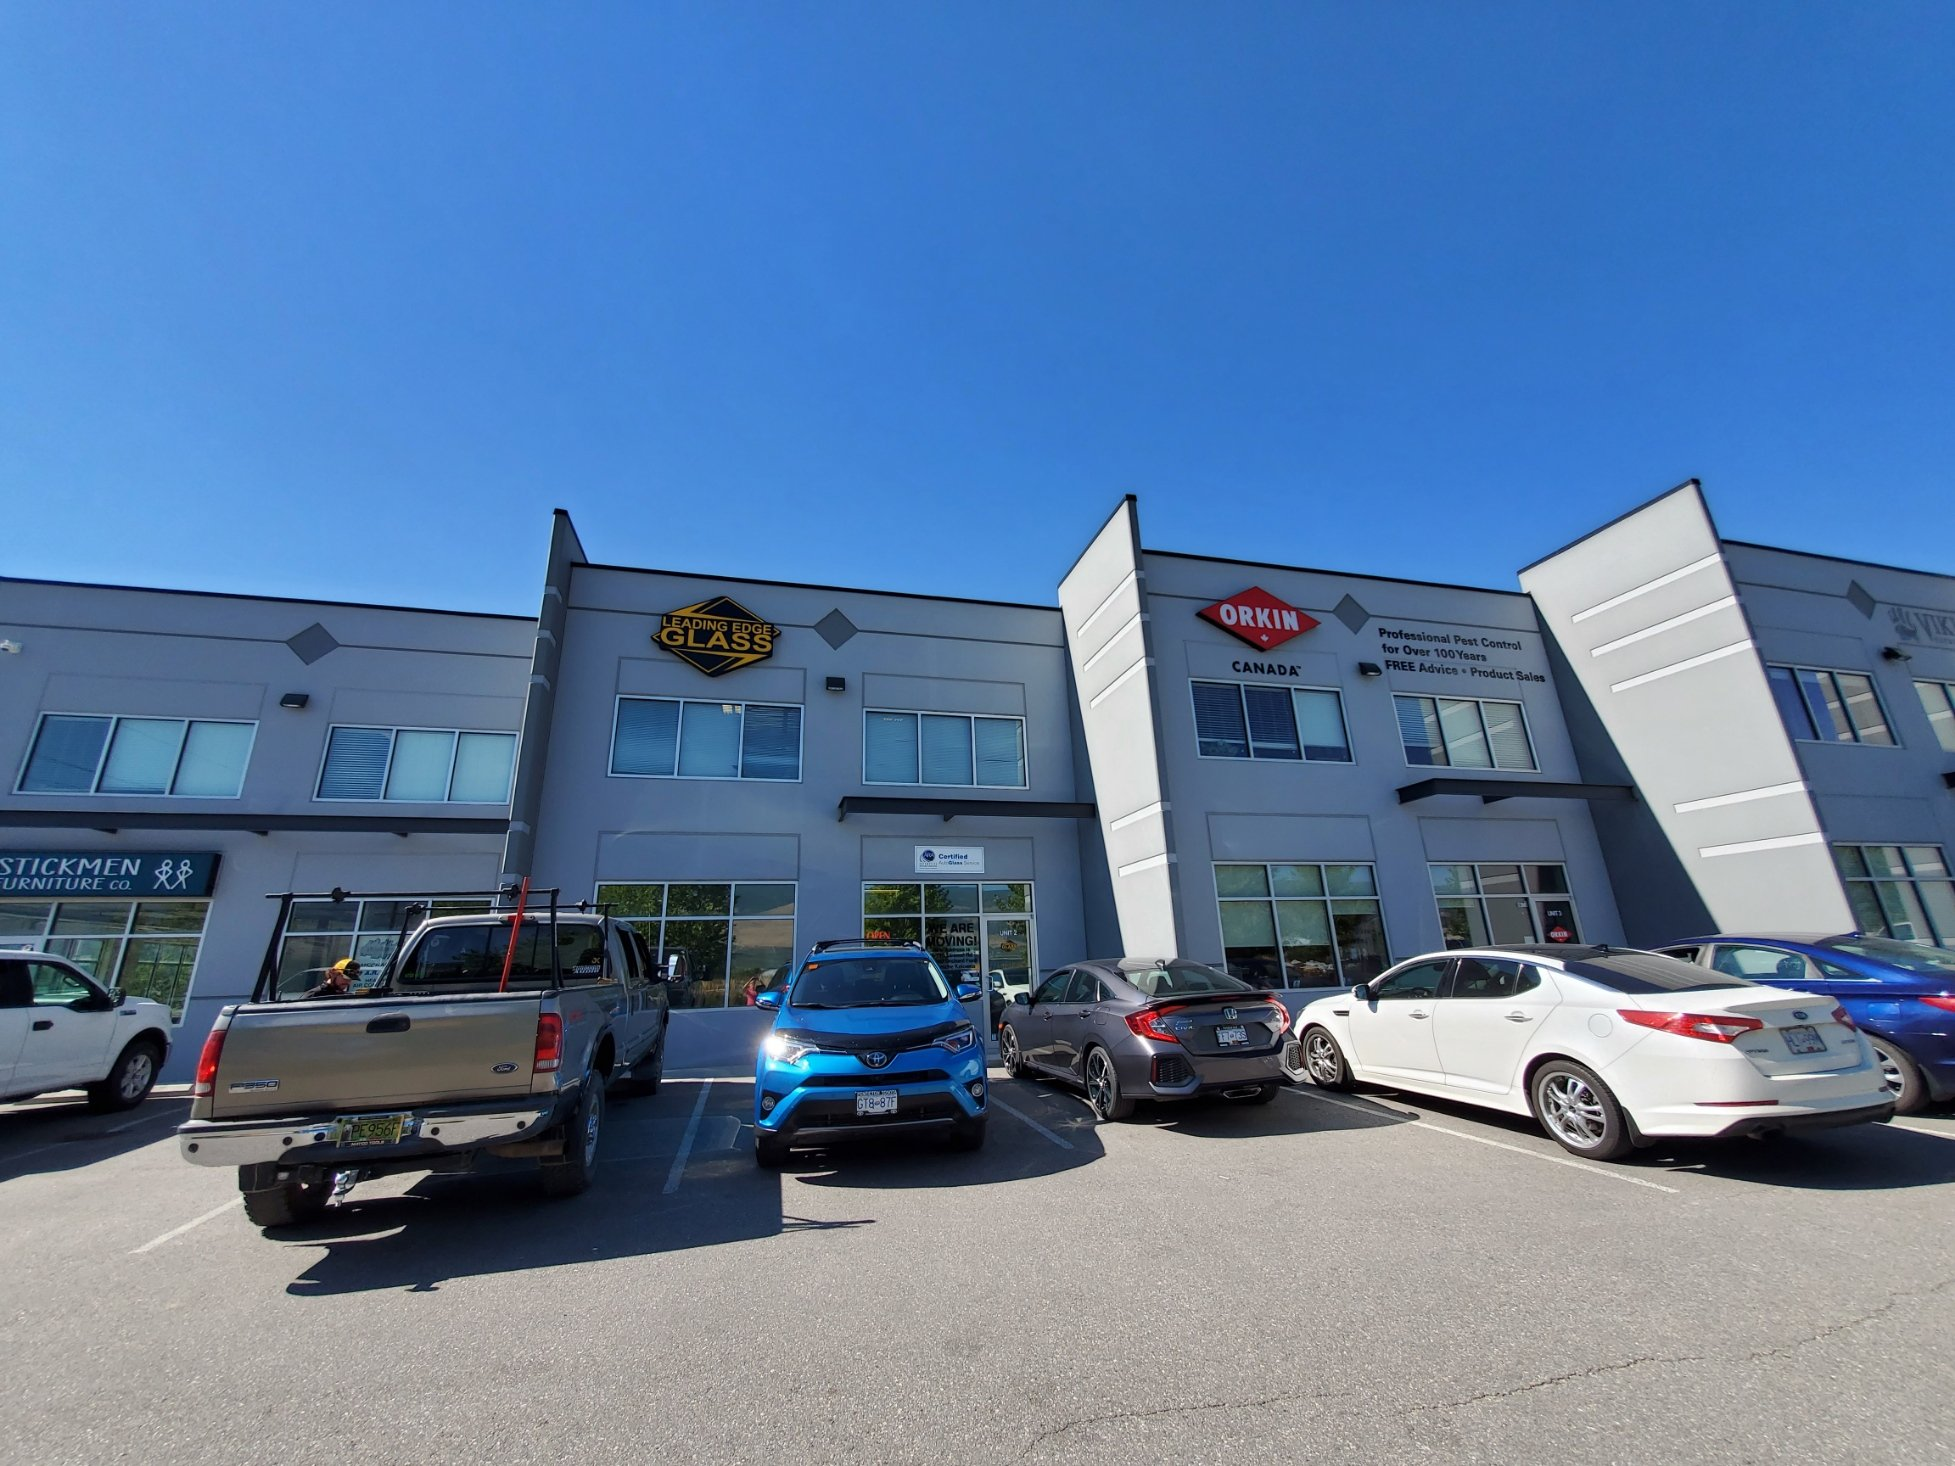 #2-3190 Sexsmith Road, Kelowna, BC - Modern Industrial Space for Lease in Reid's Corner